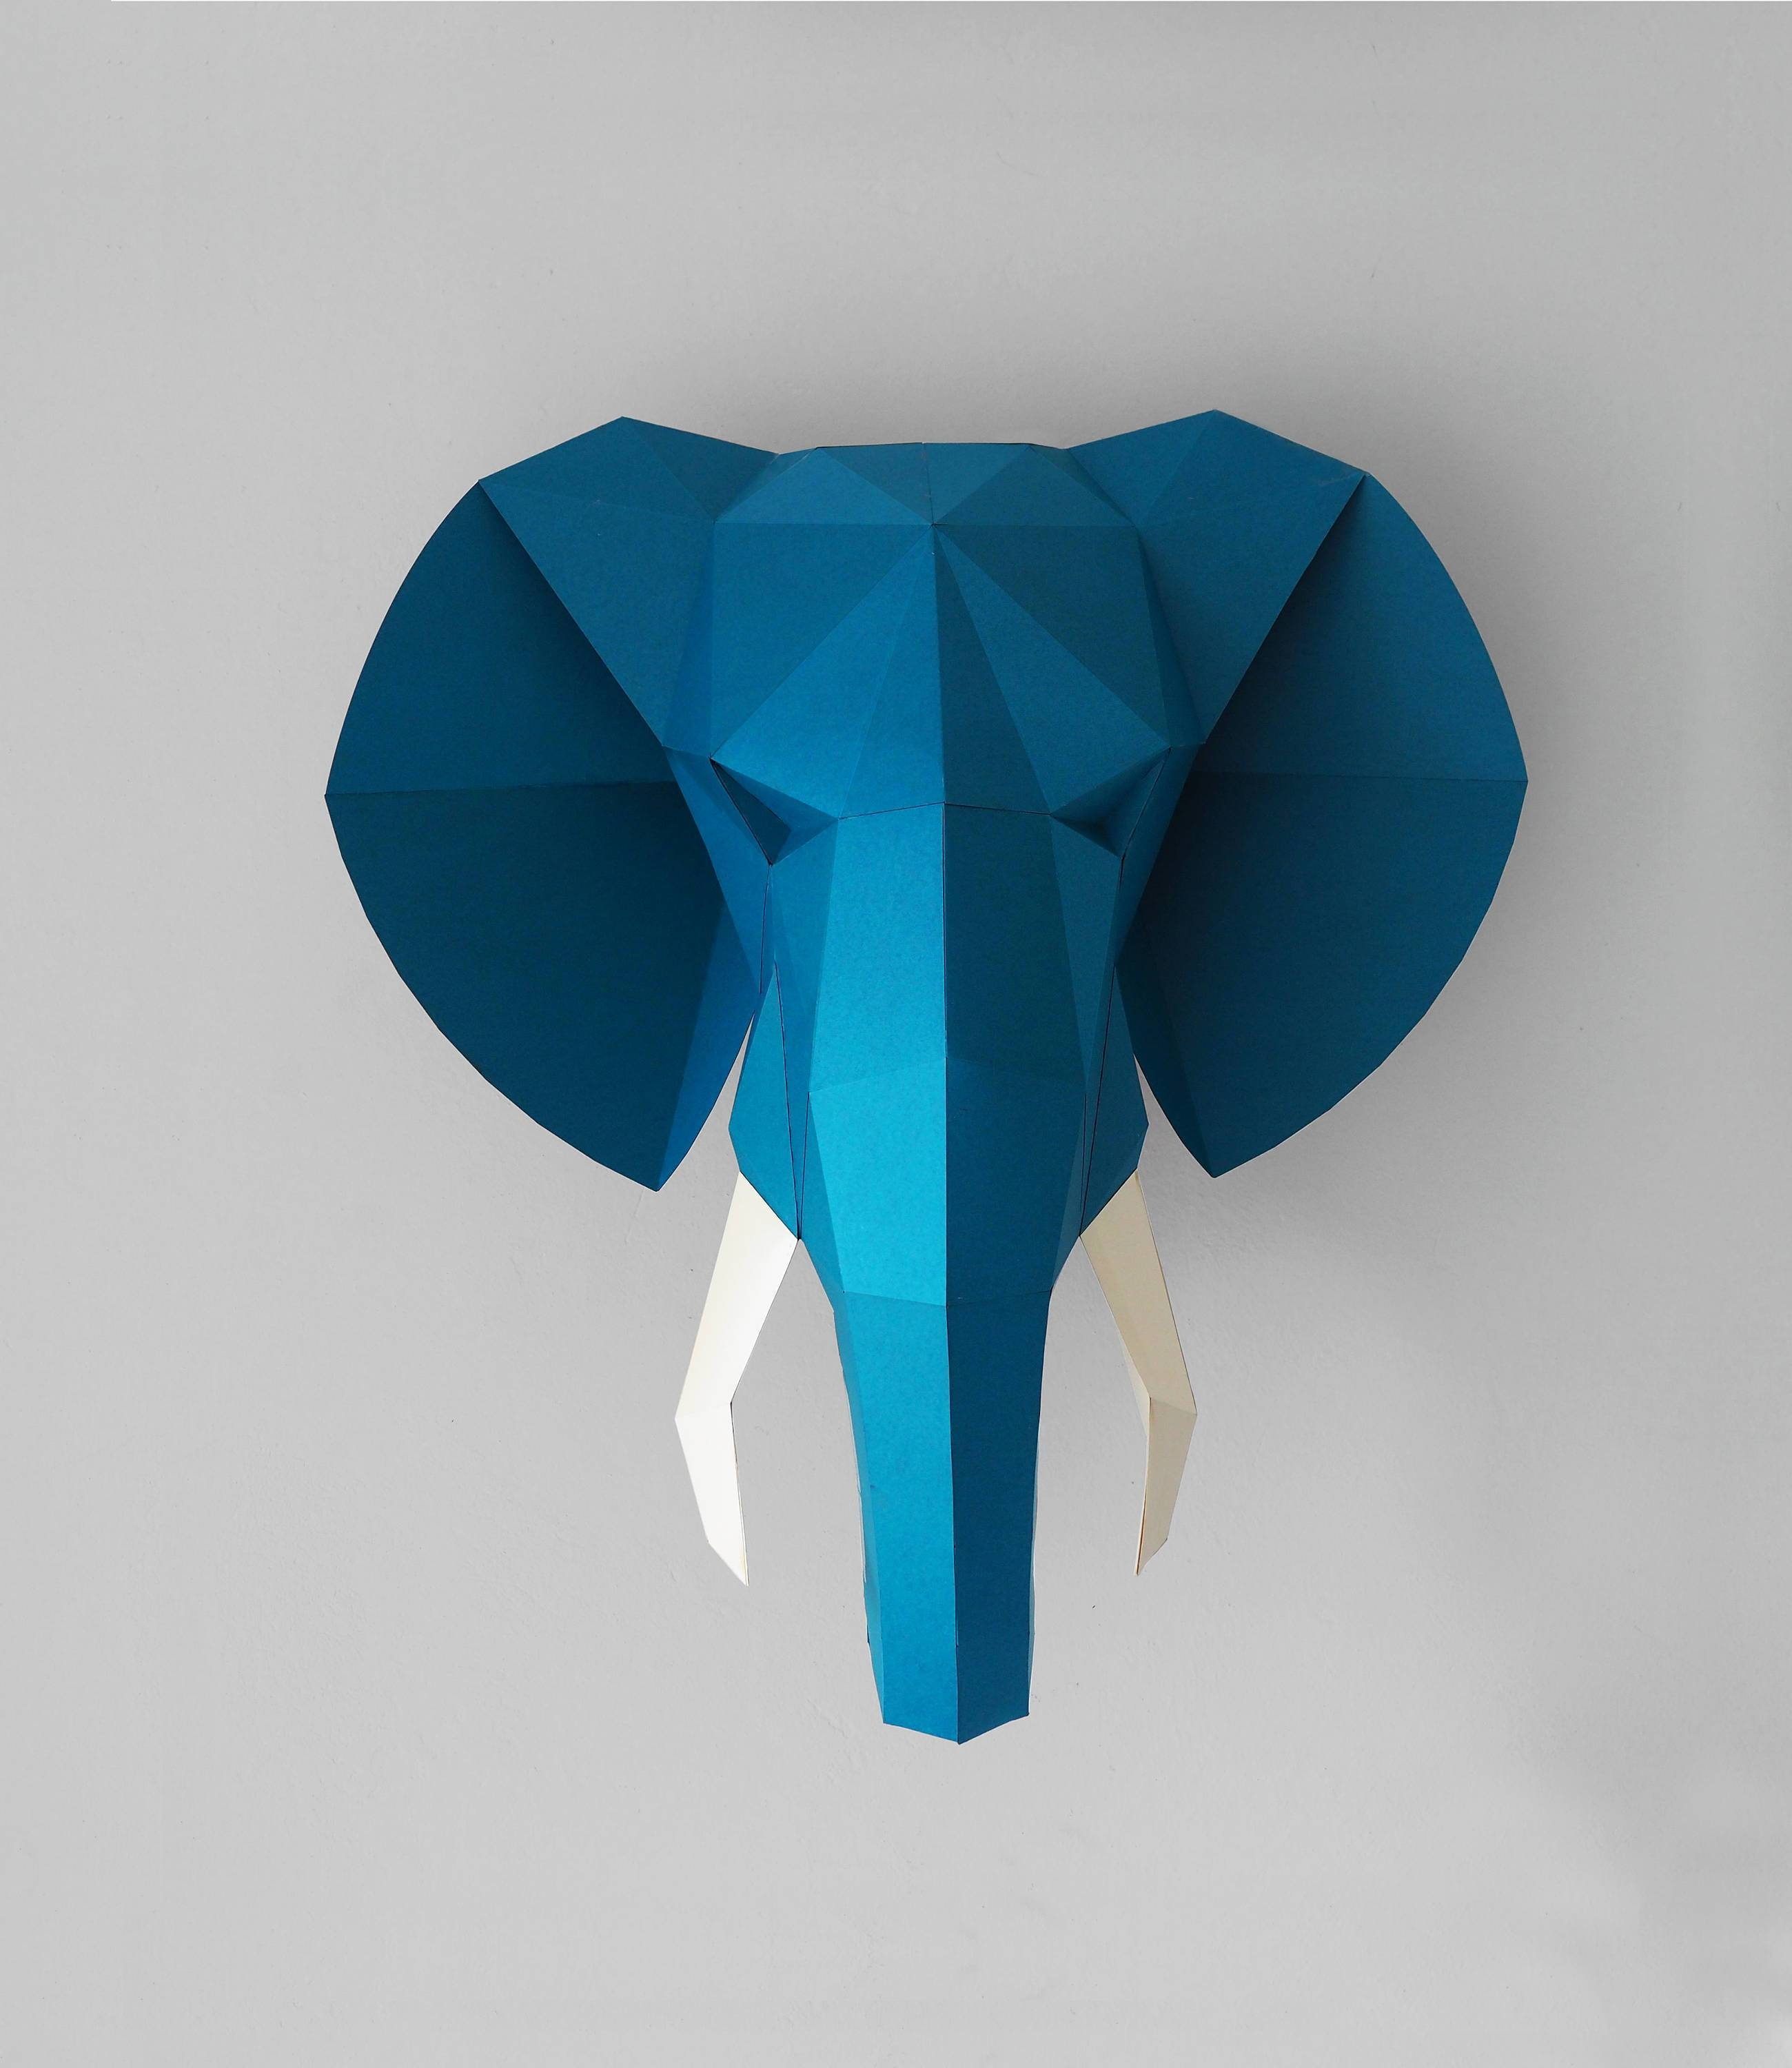 Elephant Head – Printable Pdf Pattern – Smaga Projektanci Pertaining To Most Popular 3D Wall Art With Paper (View 16 of 20)